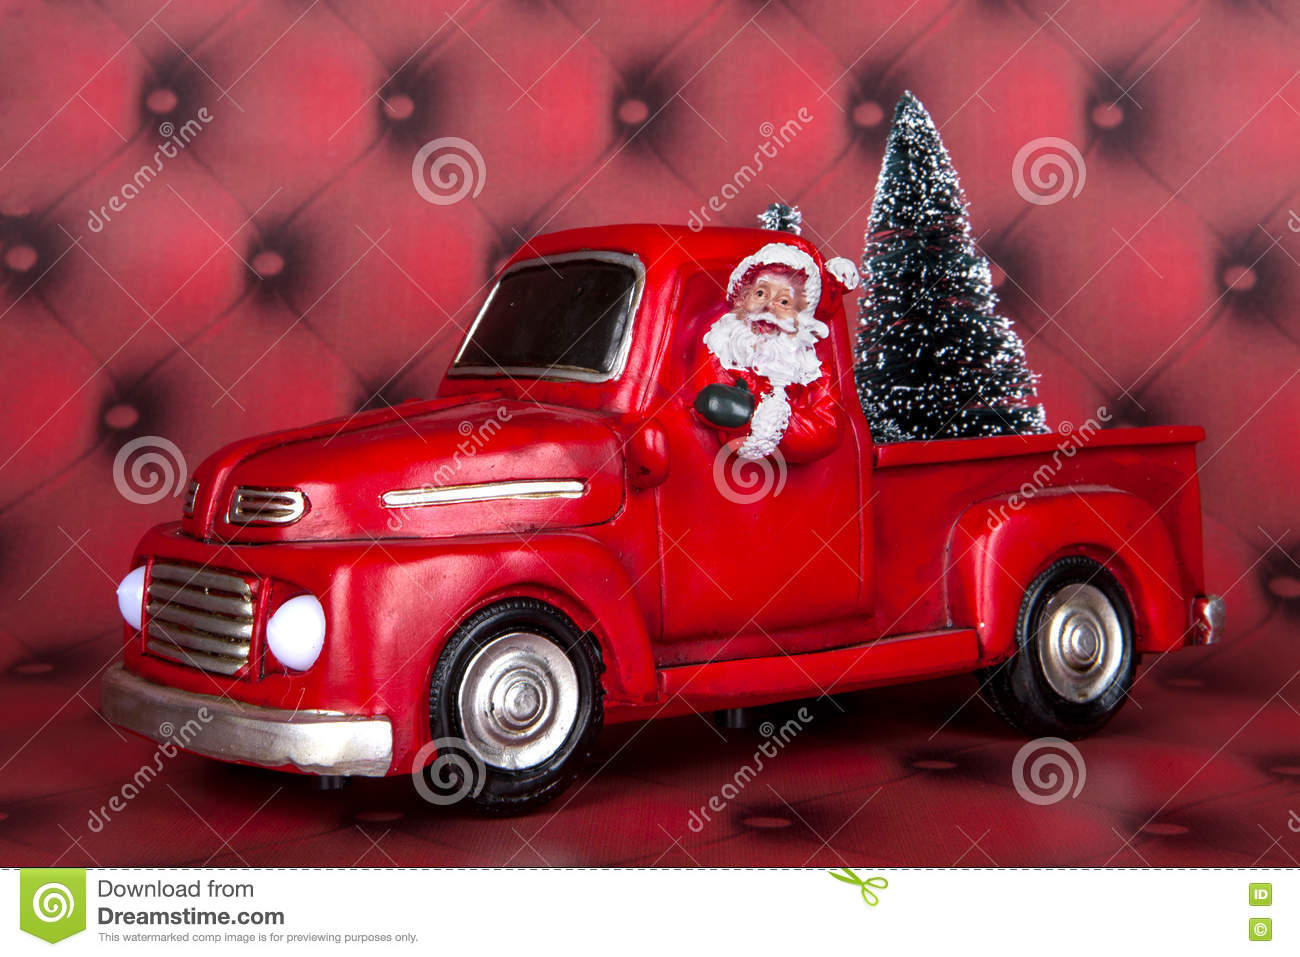 a santa claus and truck decoration for christmas